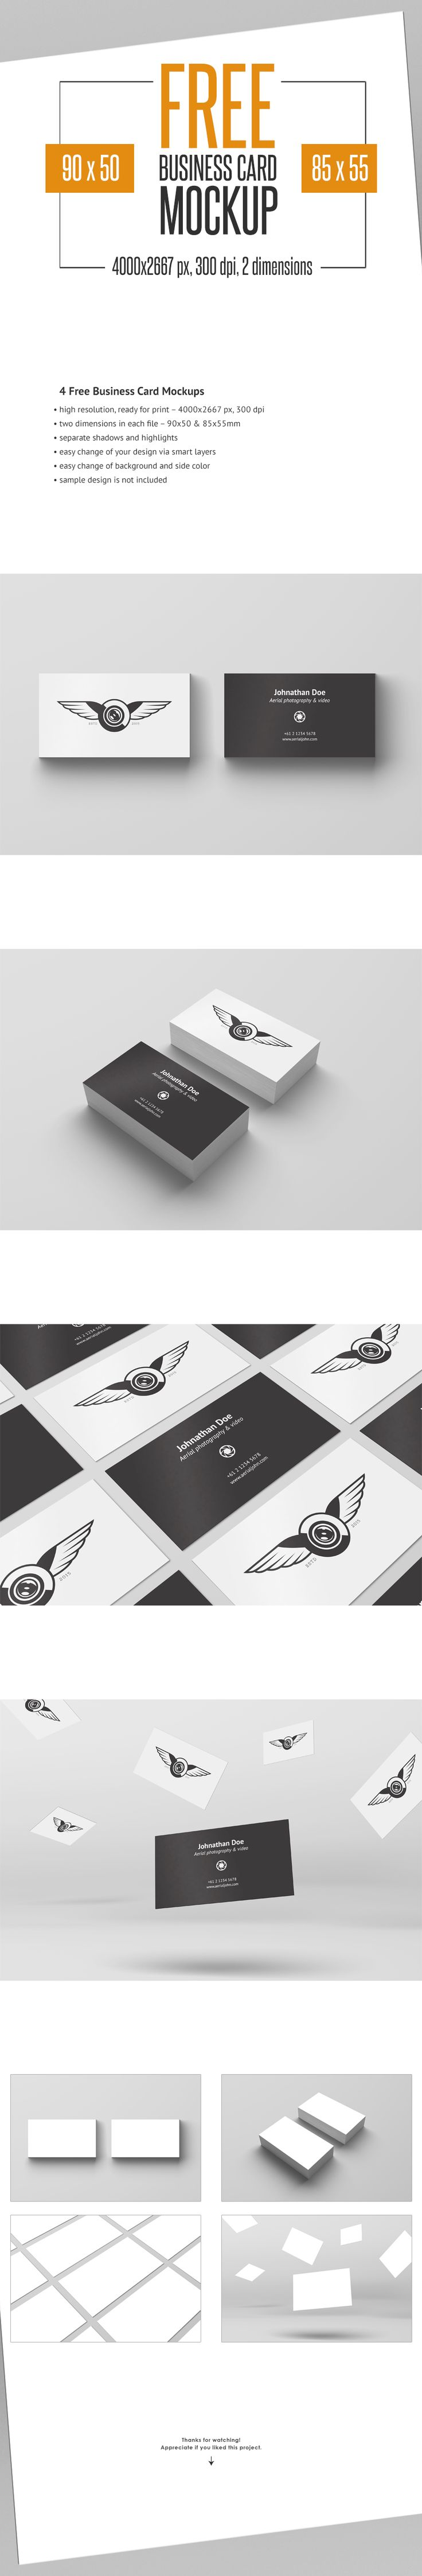 4 Free Business Card Mockup on Behance